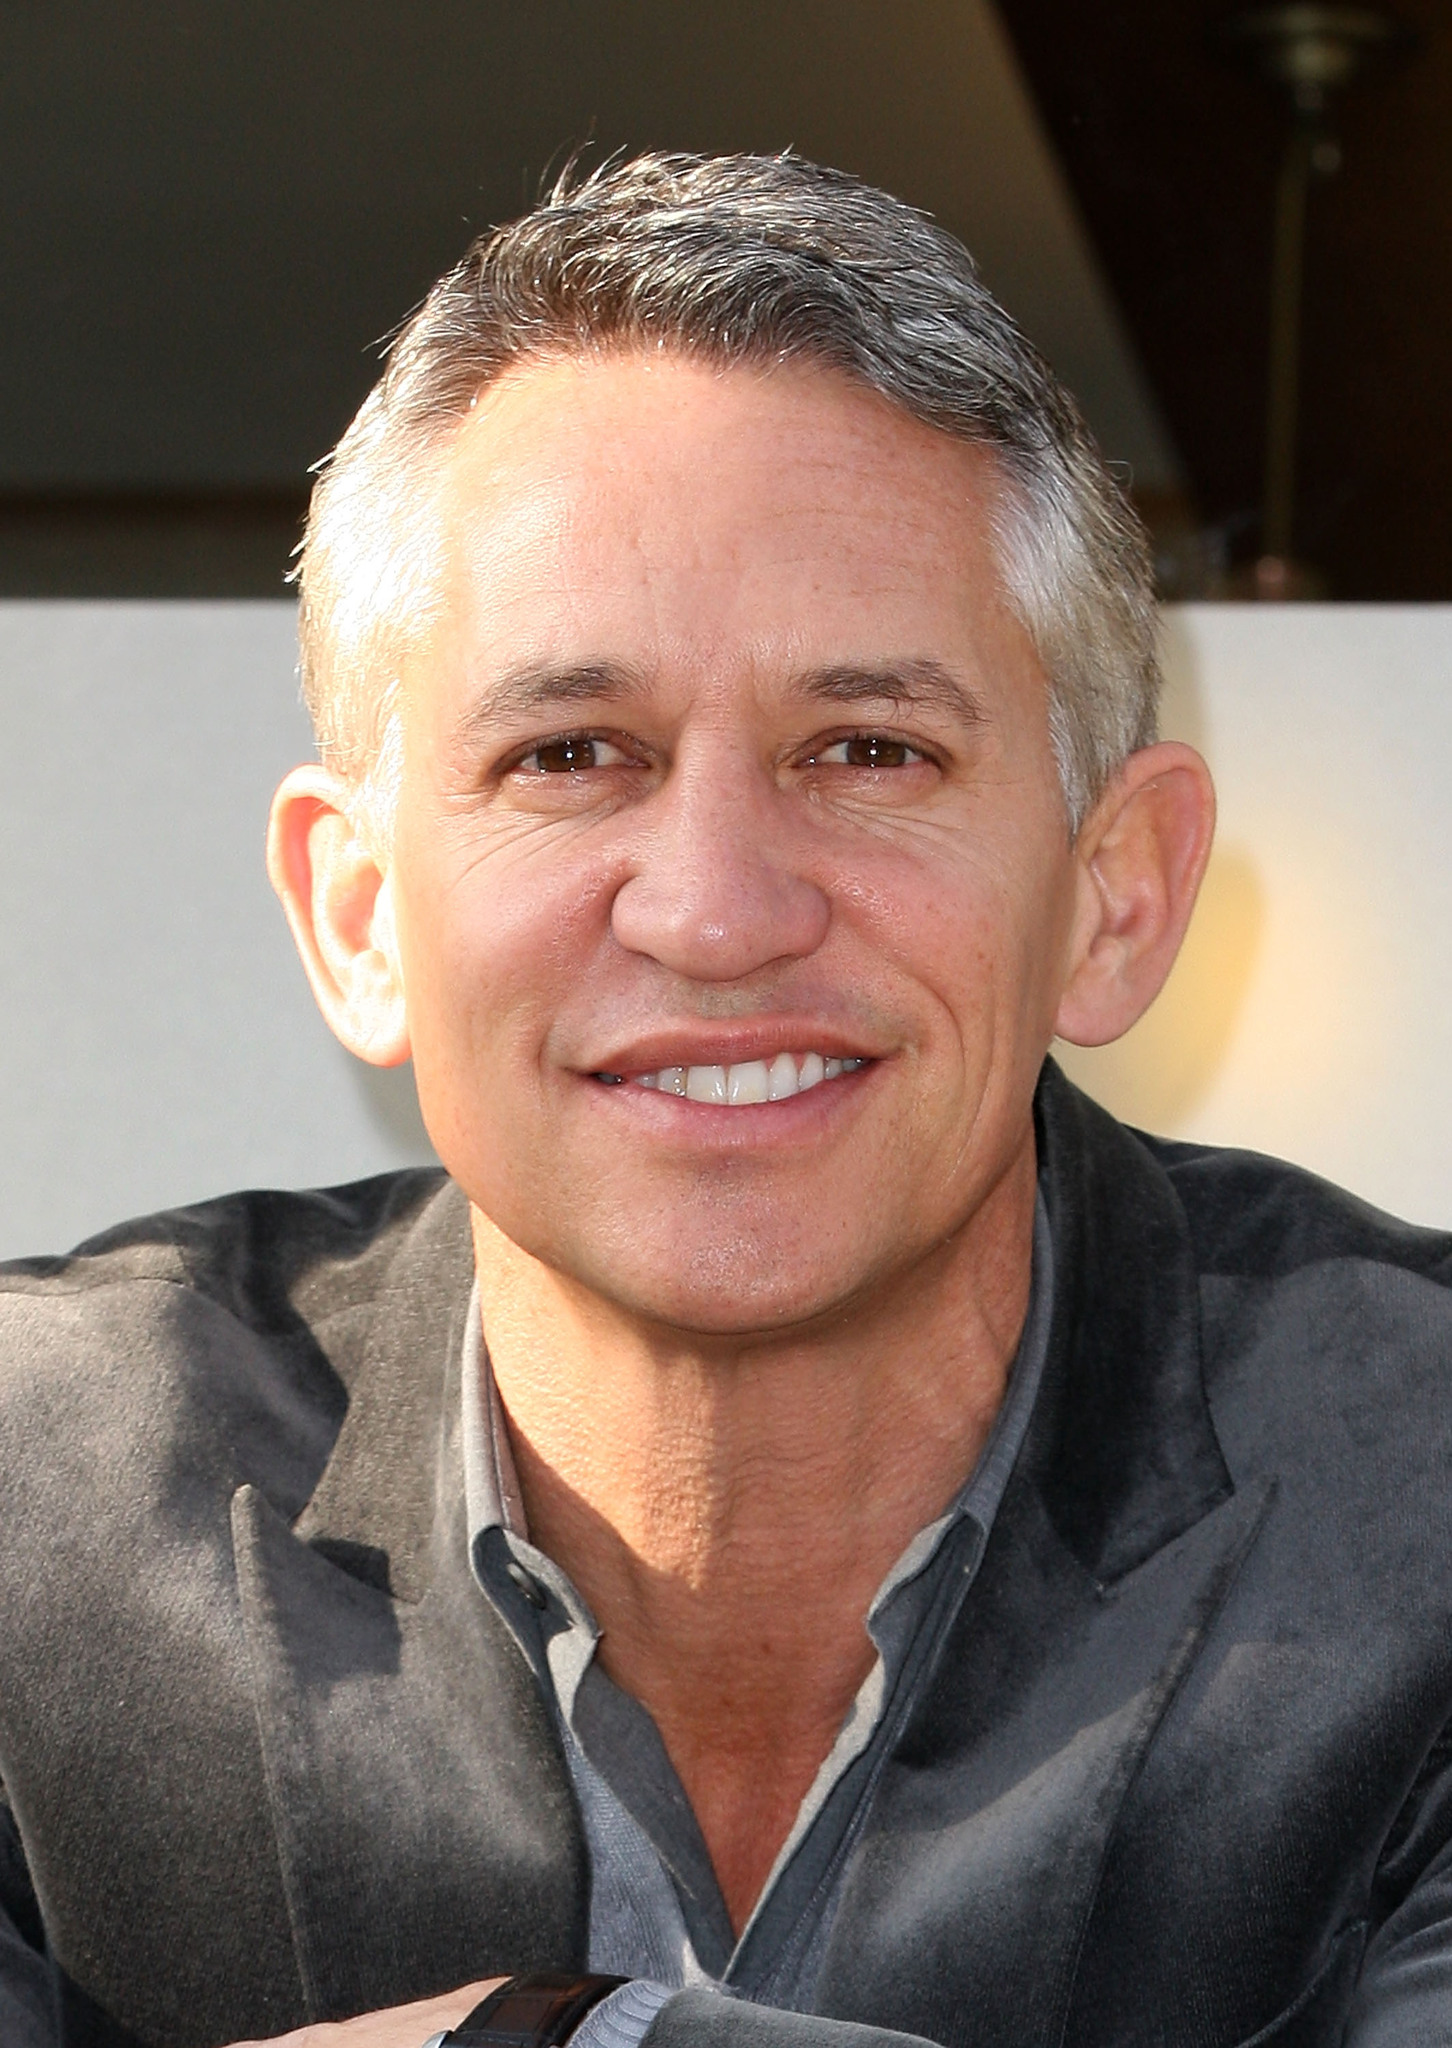 Gary Lineker - Contact Info, Agent, Manager | IMDbPro